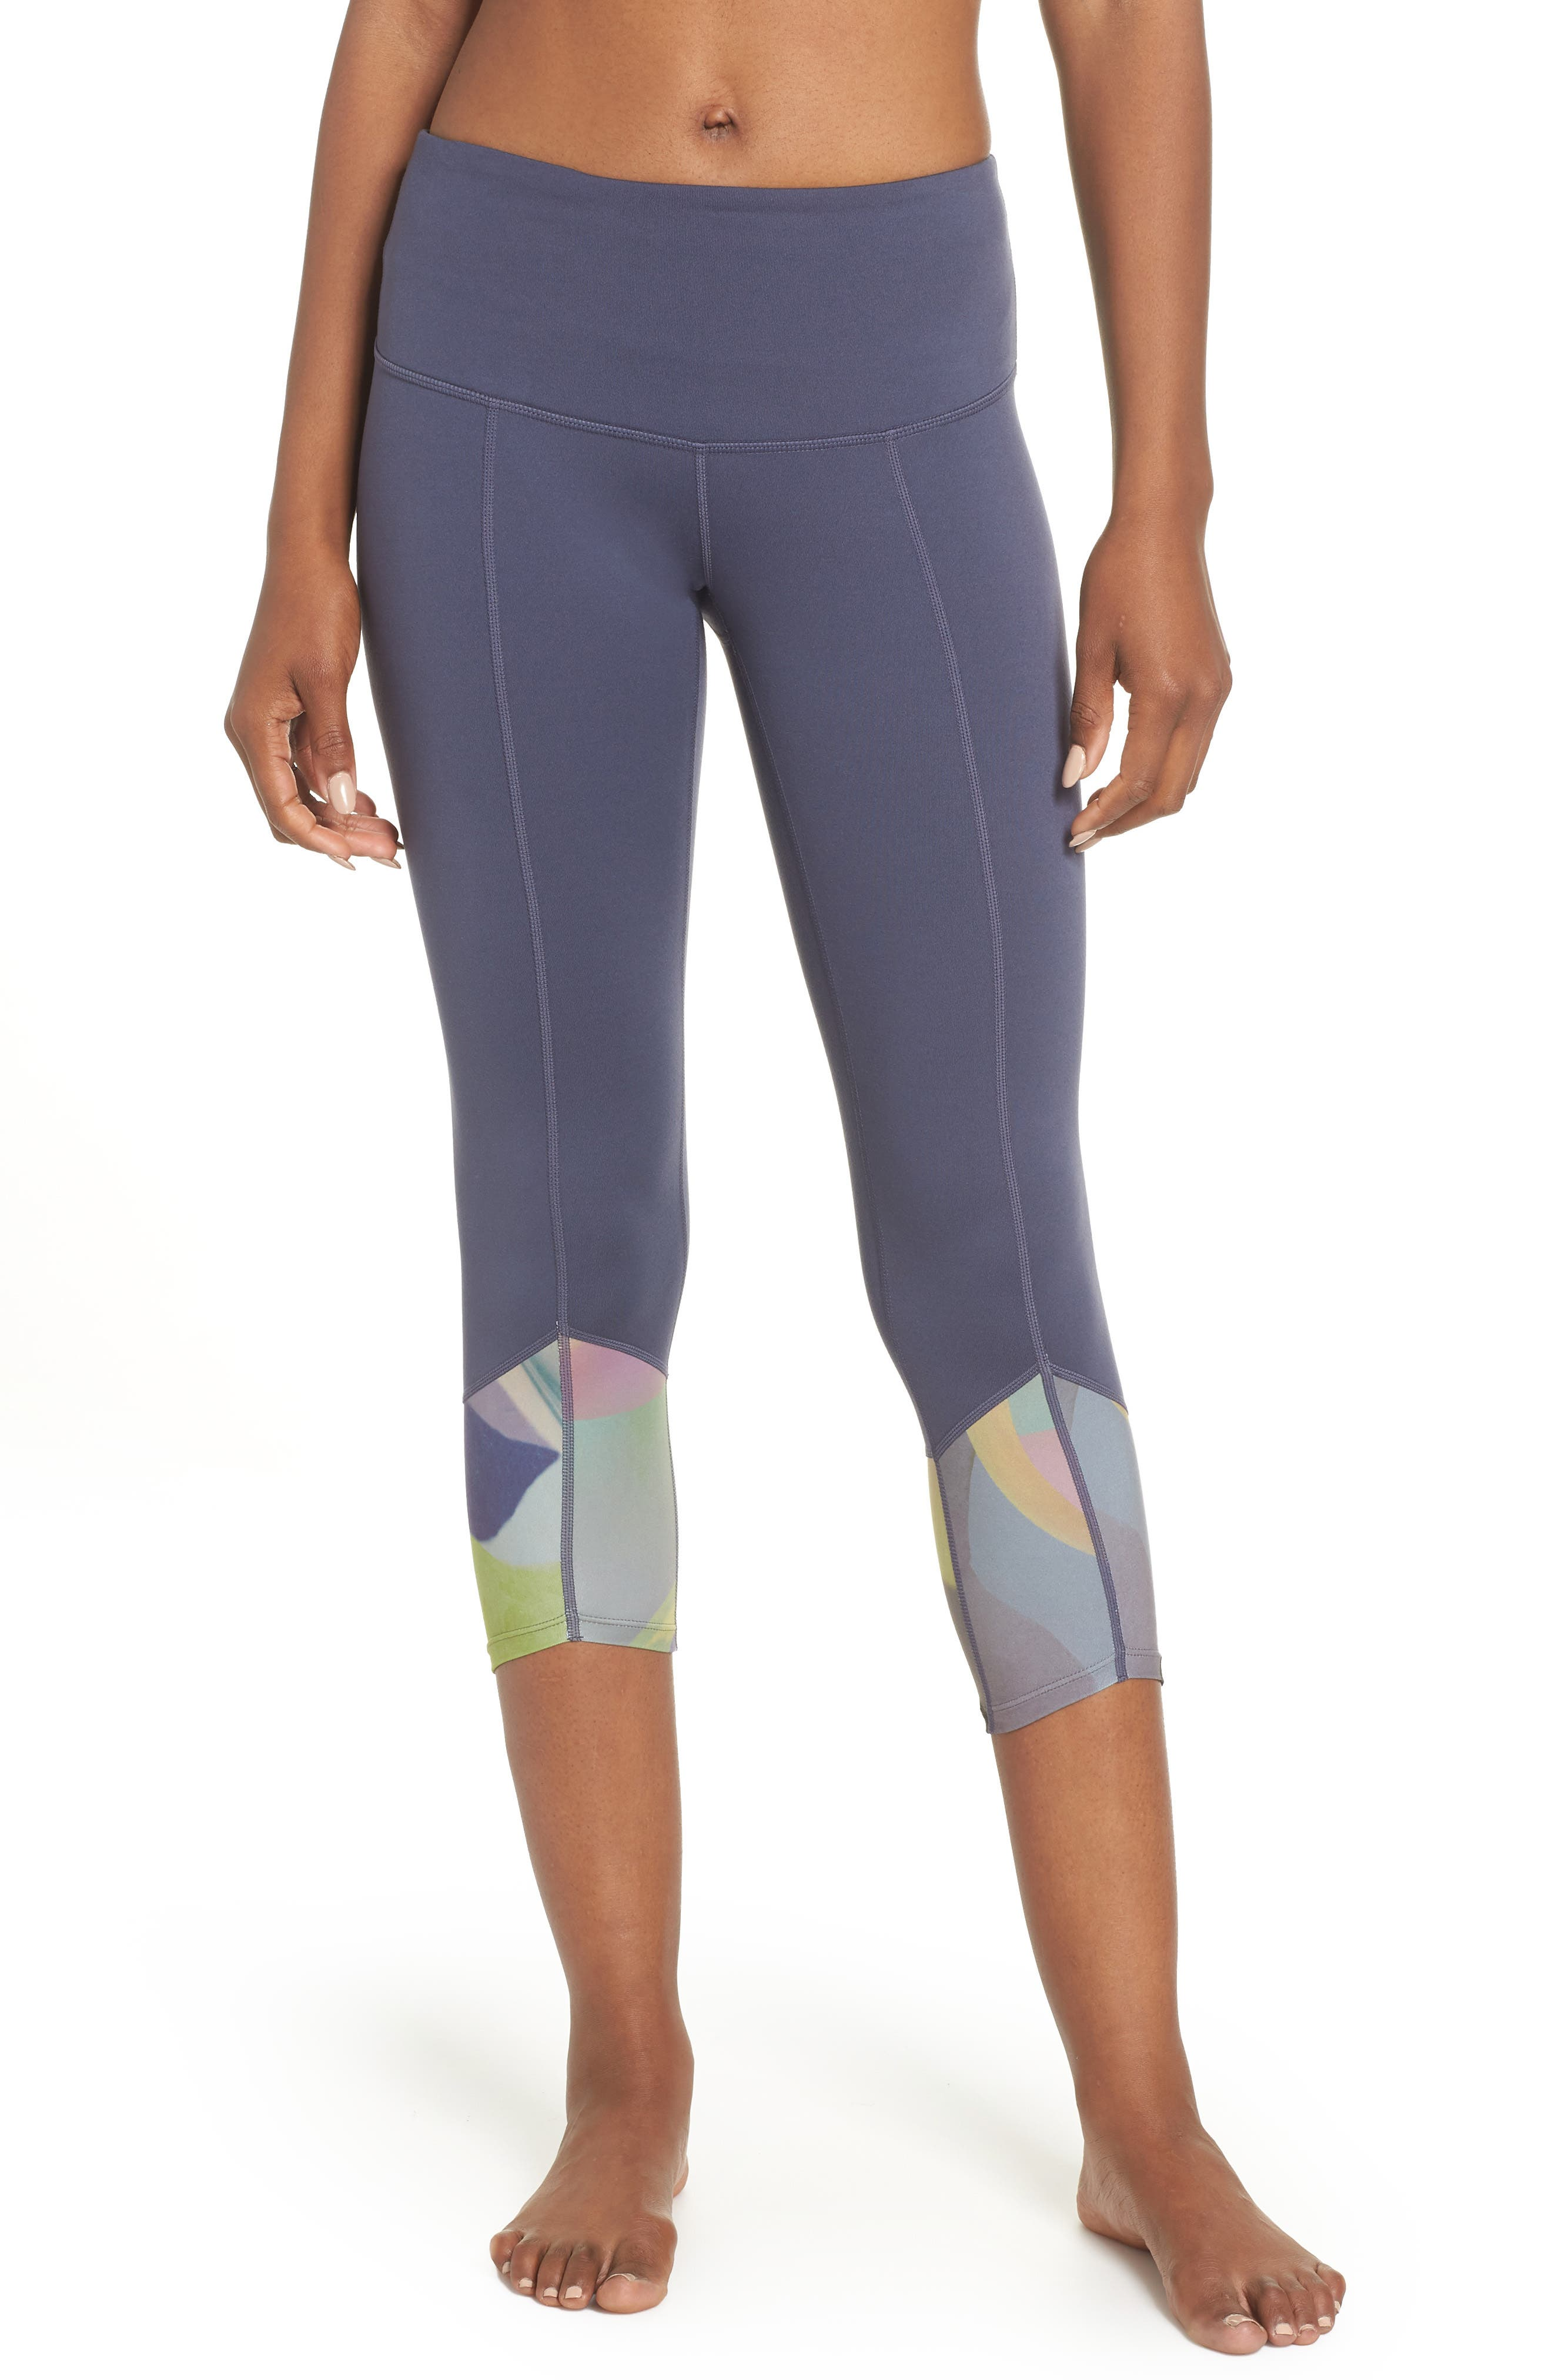 Re-Center Crop Recycled Leggings,                             Main thumbnail 1, color,                             GREY SLATE